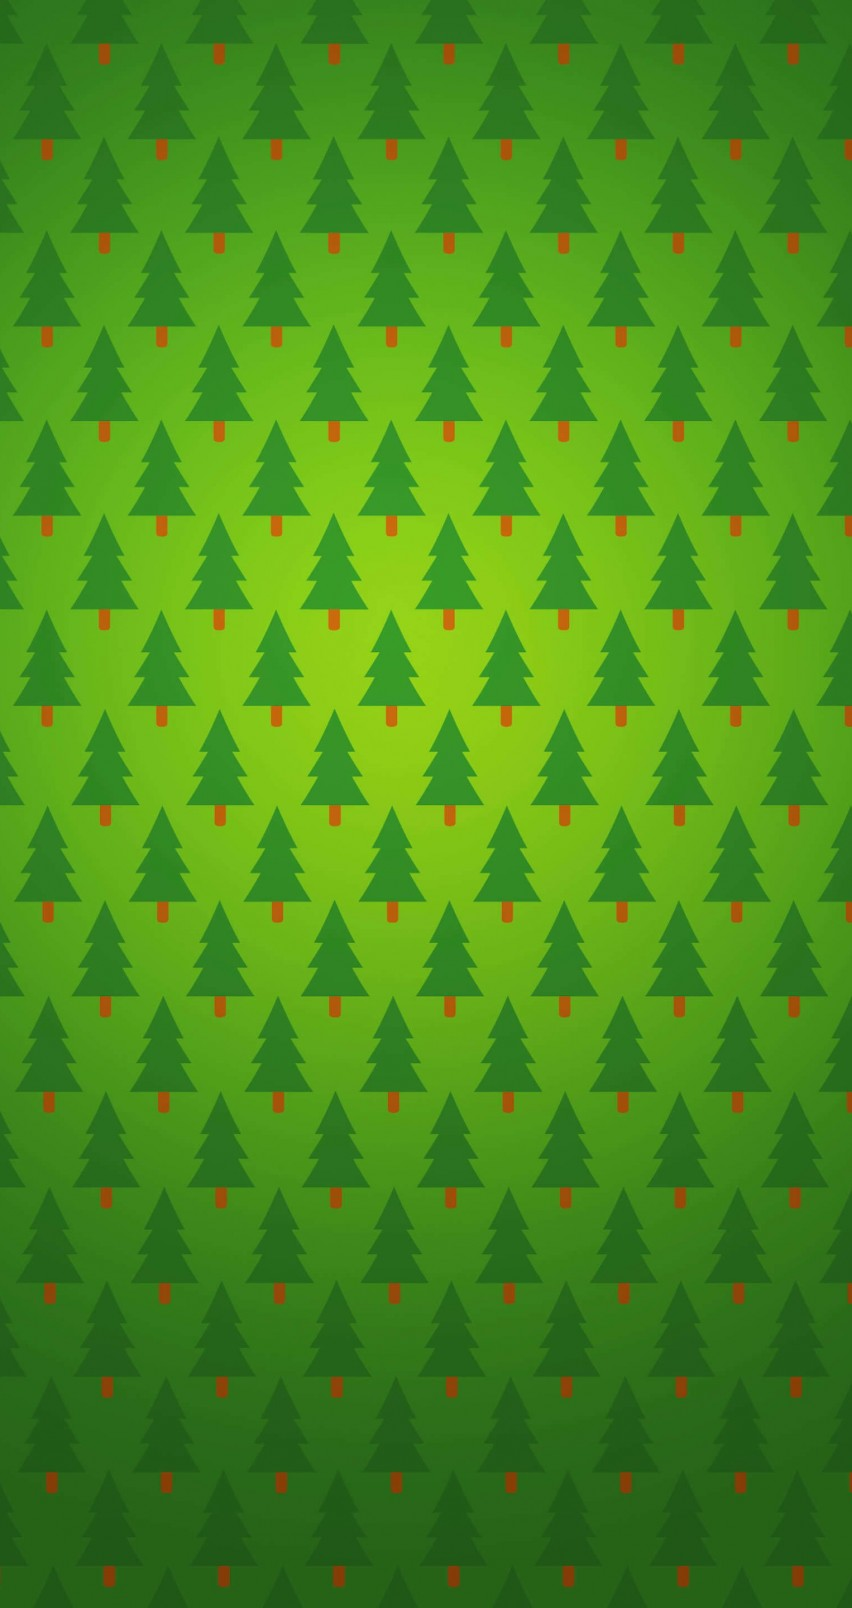 Christmas Tree Pattern Wallpaper for Apple iPhone 6 / 6s